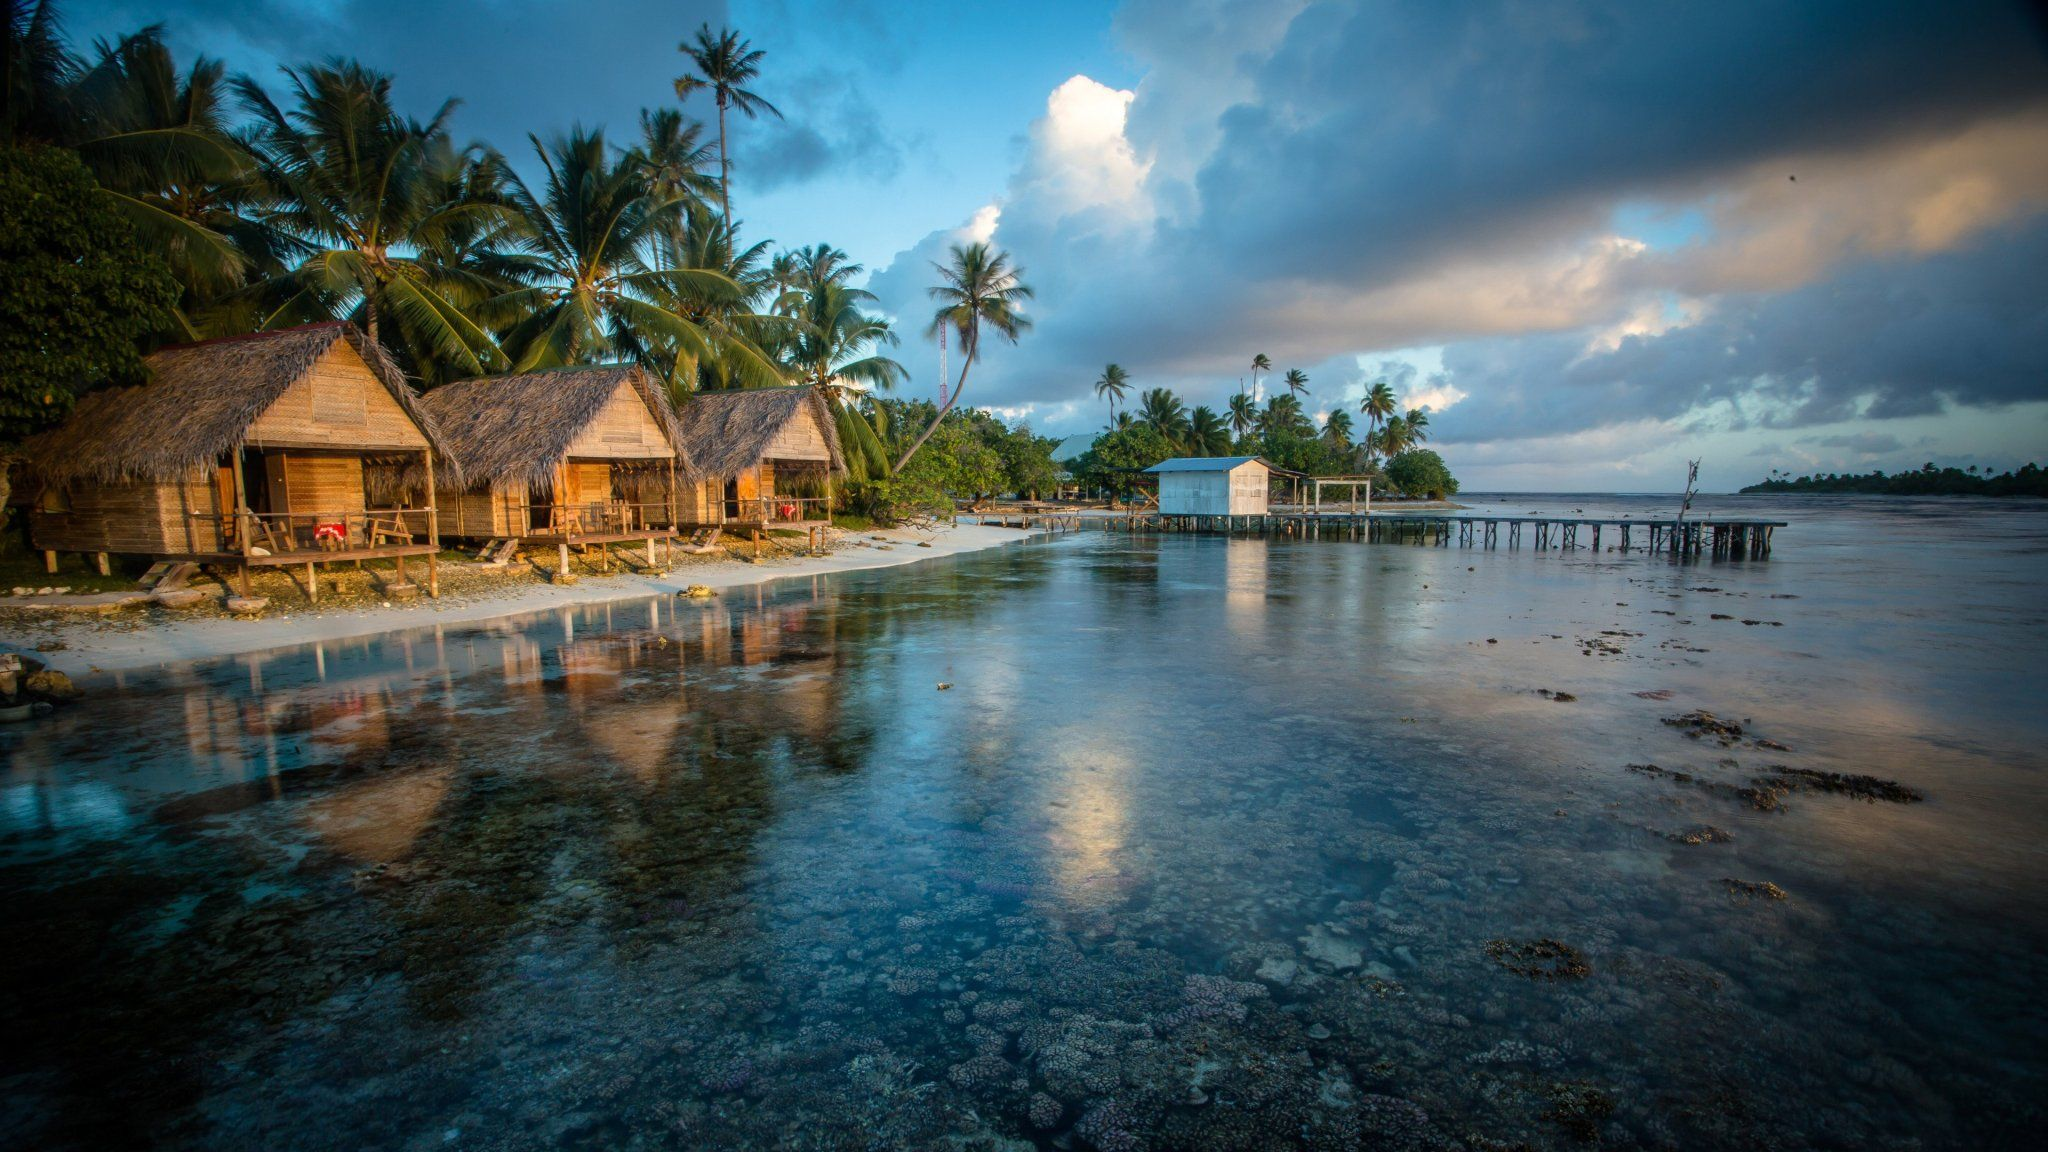 Bungalows On The Reef In French Polynesia Beach Wallpaper Hd Nature Wallpapers Wallpaper Pc